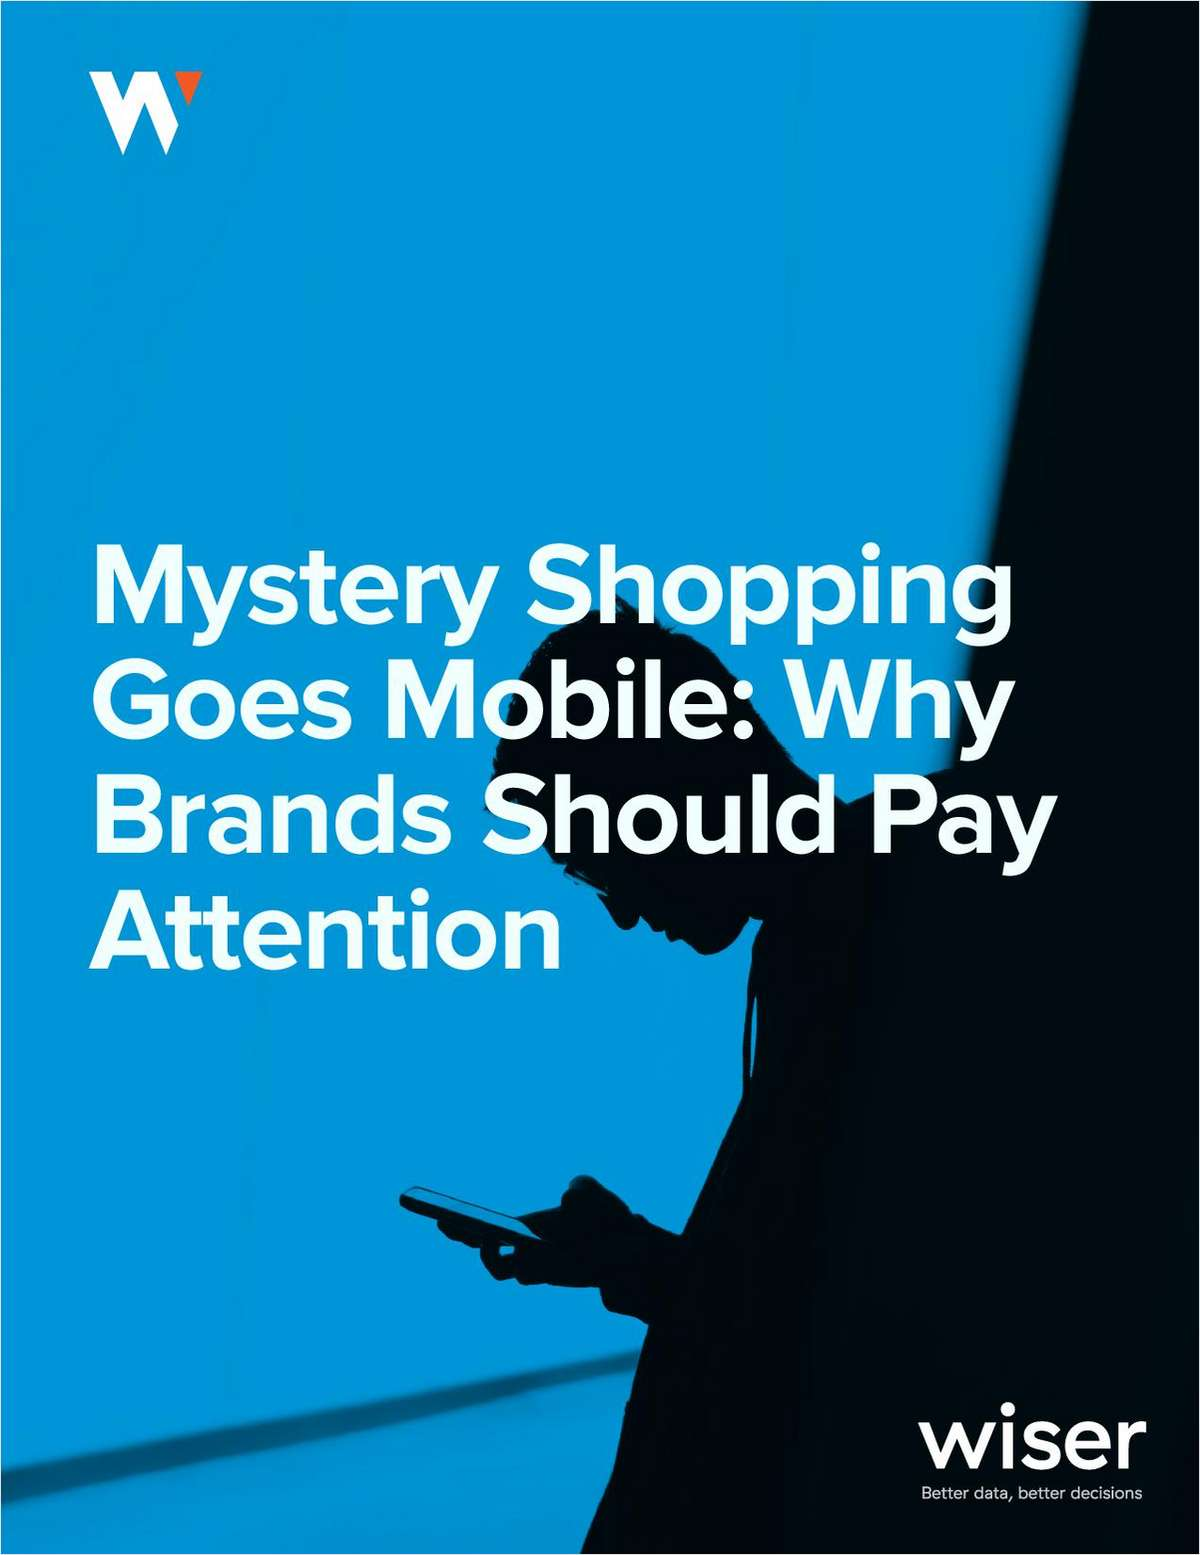 Mystery Shopping Goes Mobile: Why Brands Should Pay Attention